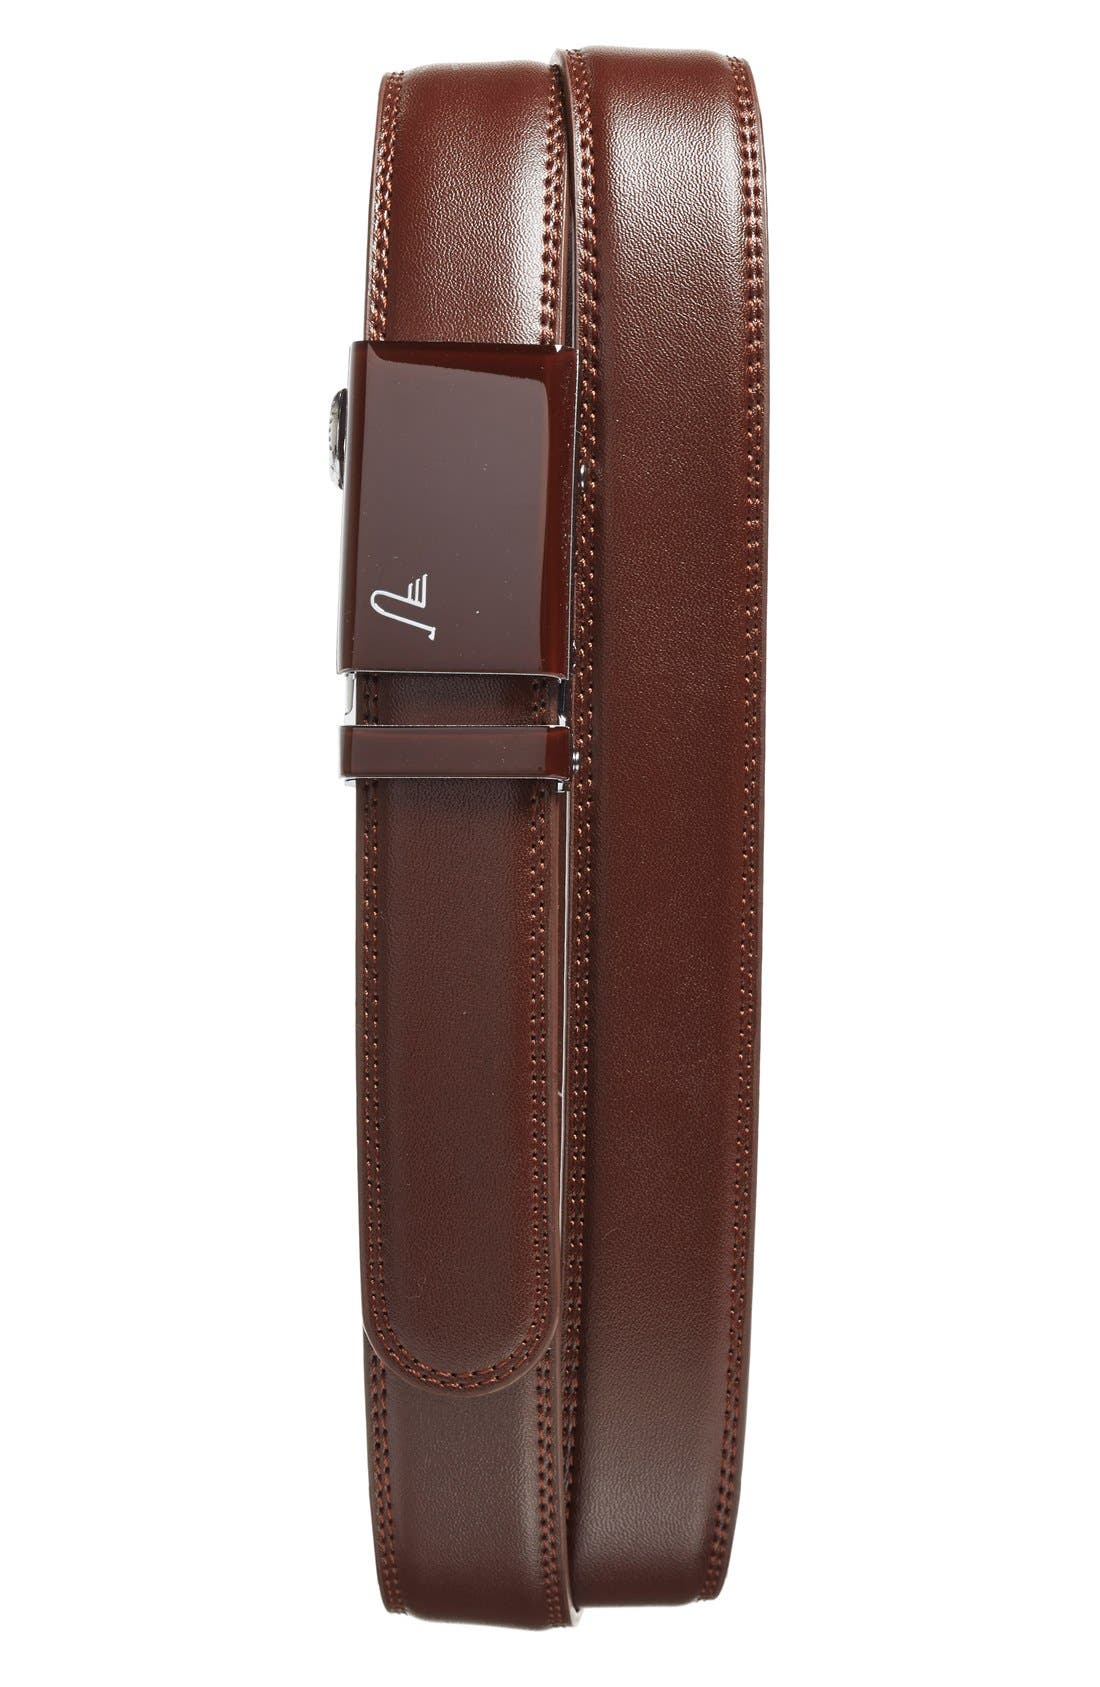 MISSION BELT, 'Chocolate' Leather Belt, Main thumbnail 1, color, BROWN/ BROWN